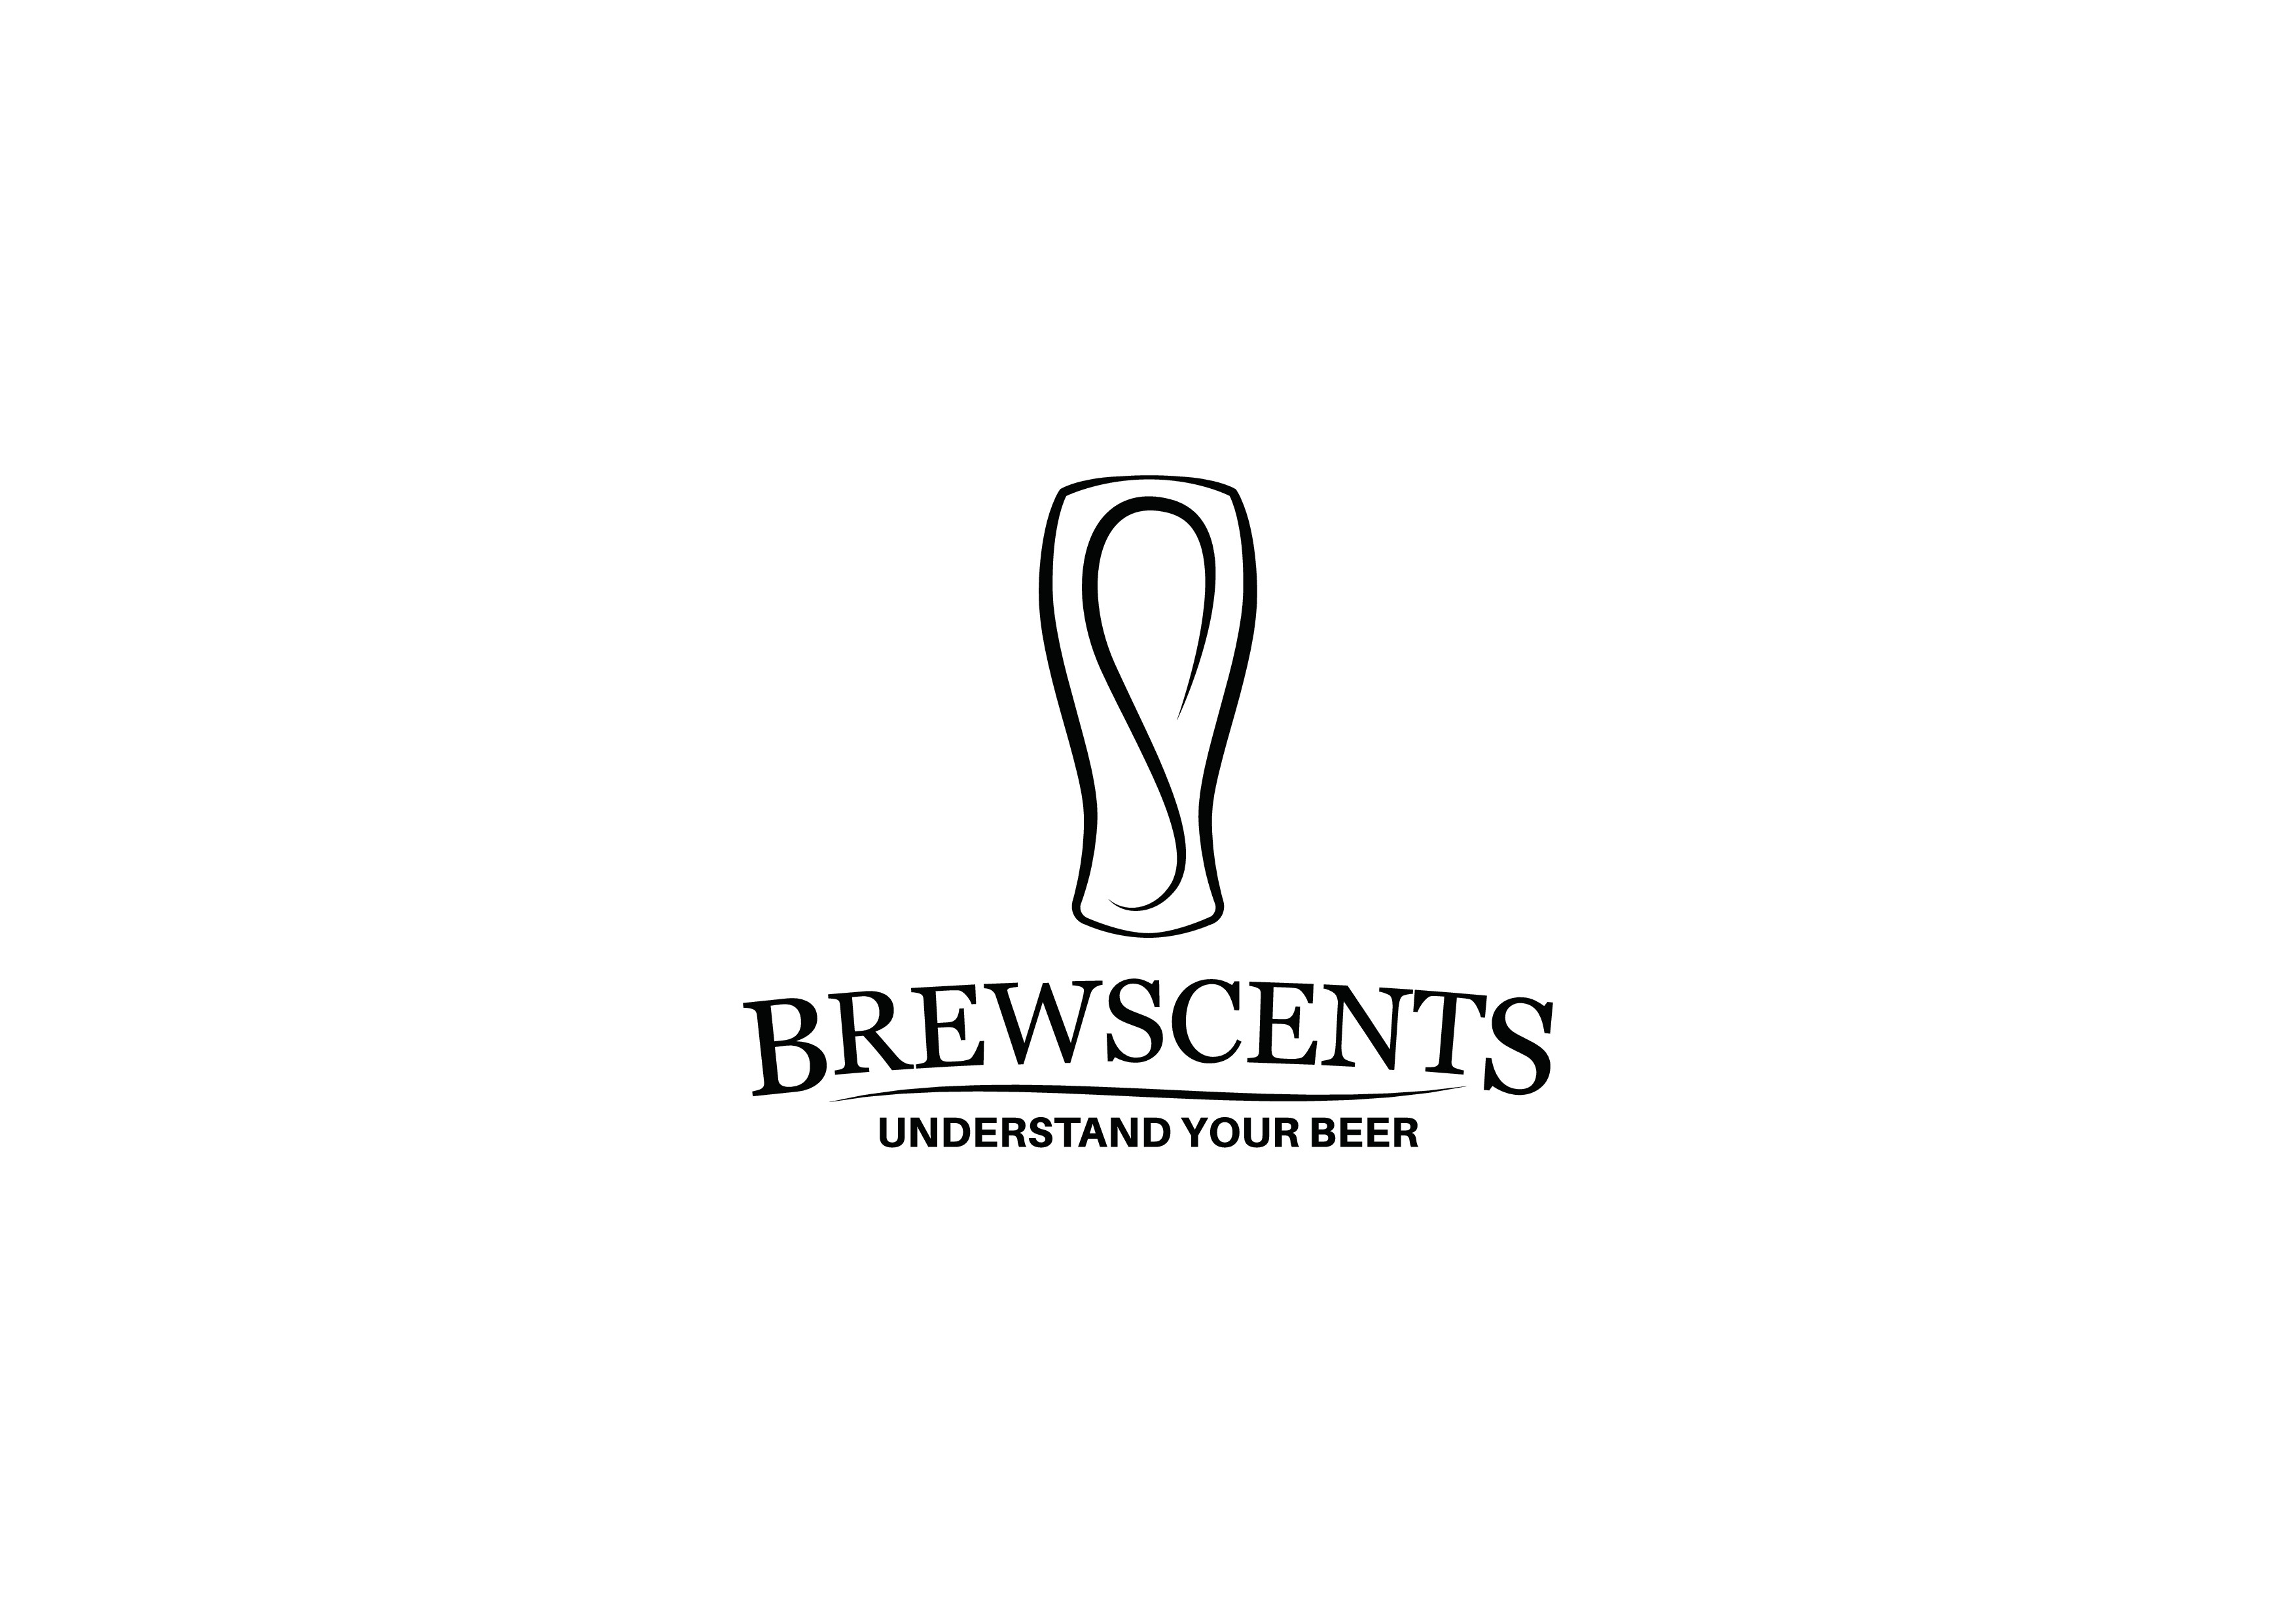 BrewScents is all about understanding beer flavors.  Help us convey the aroma of beer in a logo!